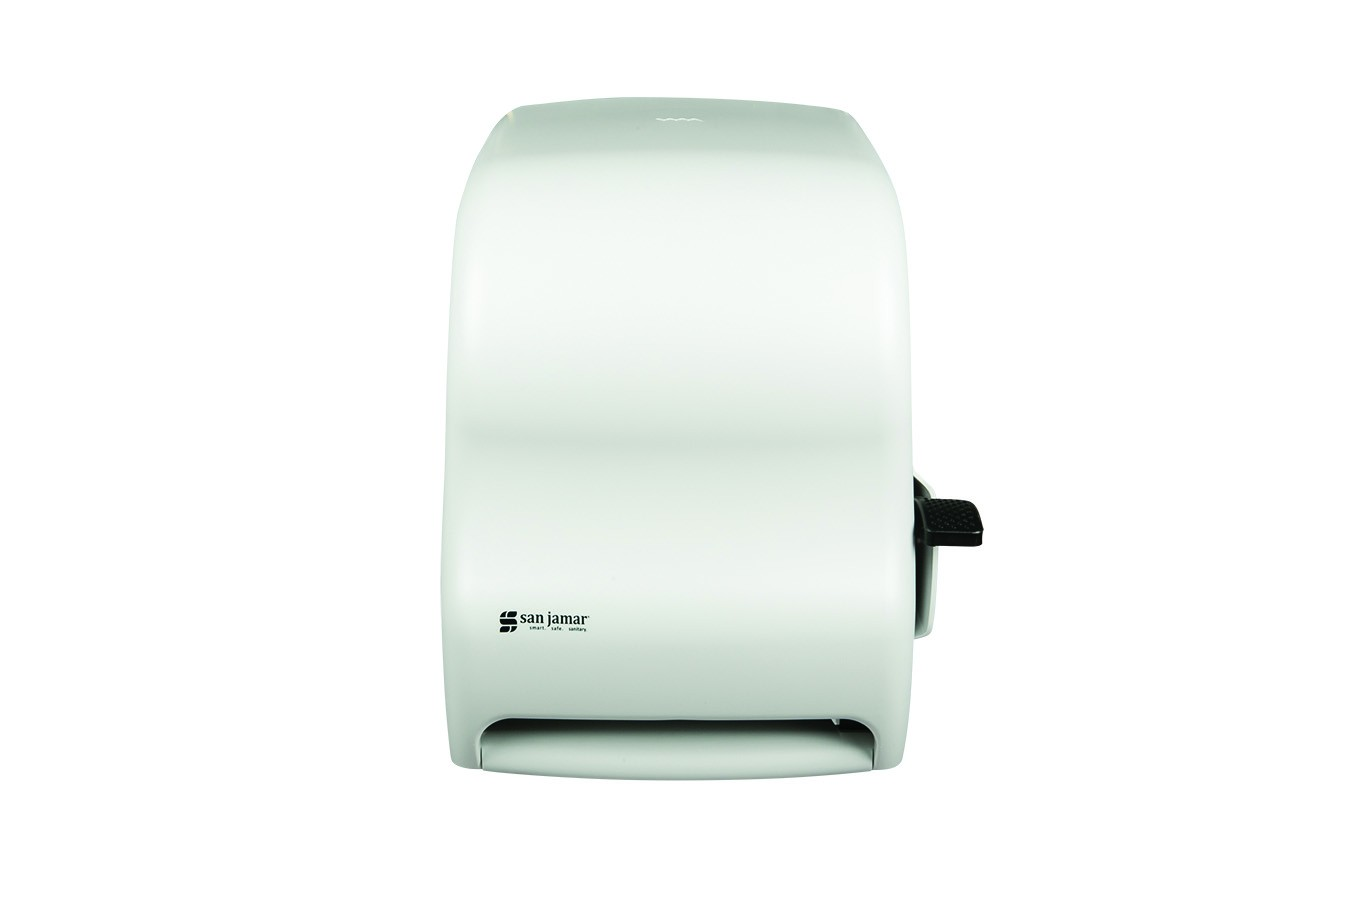 San Jamar T1100WH Classic White Sand Lever Touch Roll Towel Dispenser